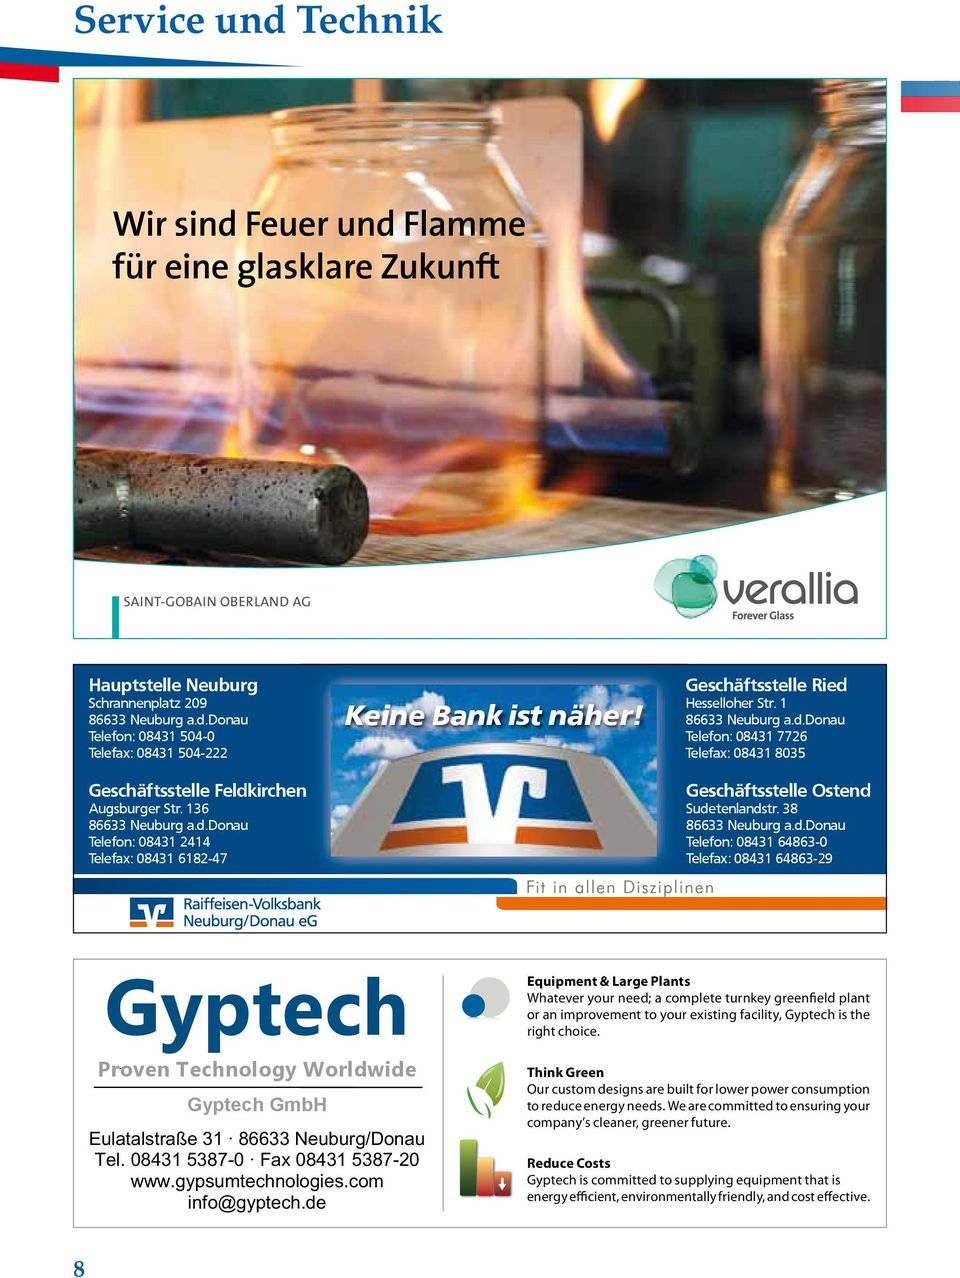 08431 5387-0 Fax 08431 5387-20 www.gypsumtechnologies.com info@gyptech.de Upgrade or Turnkey: Upgrade or Turnkey: Our custom designs are built for lower power consumption to reduce energy needs.